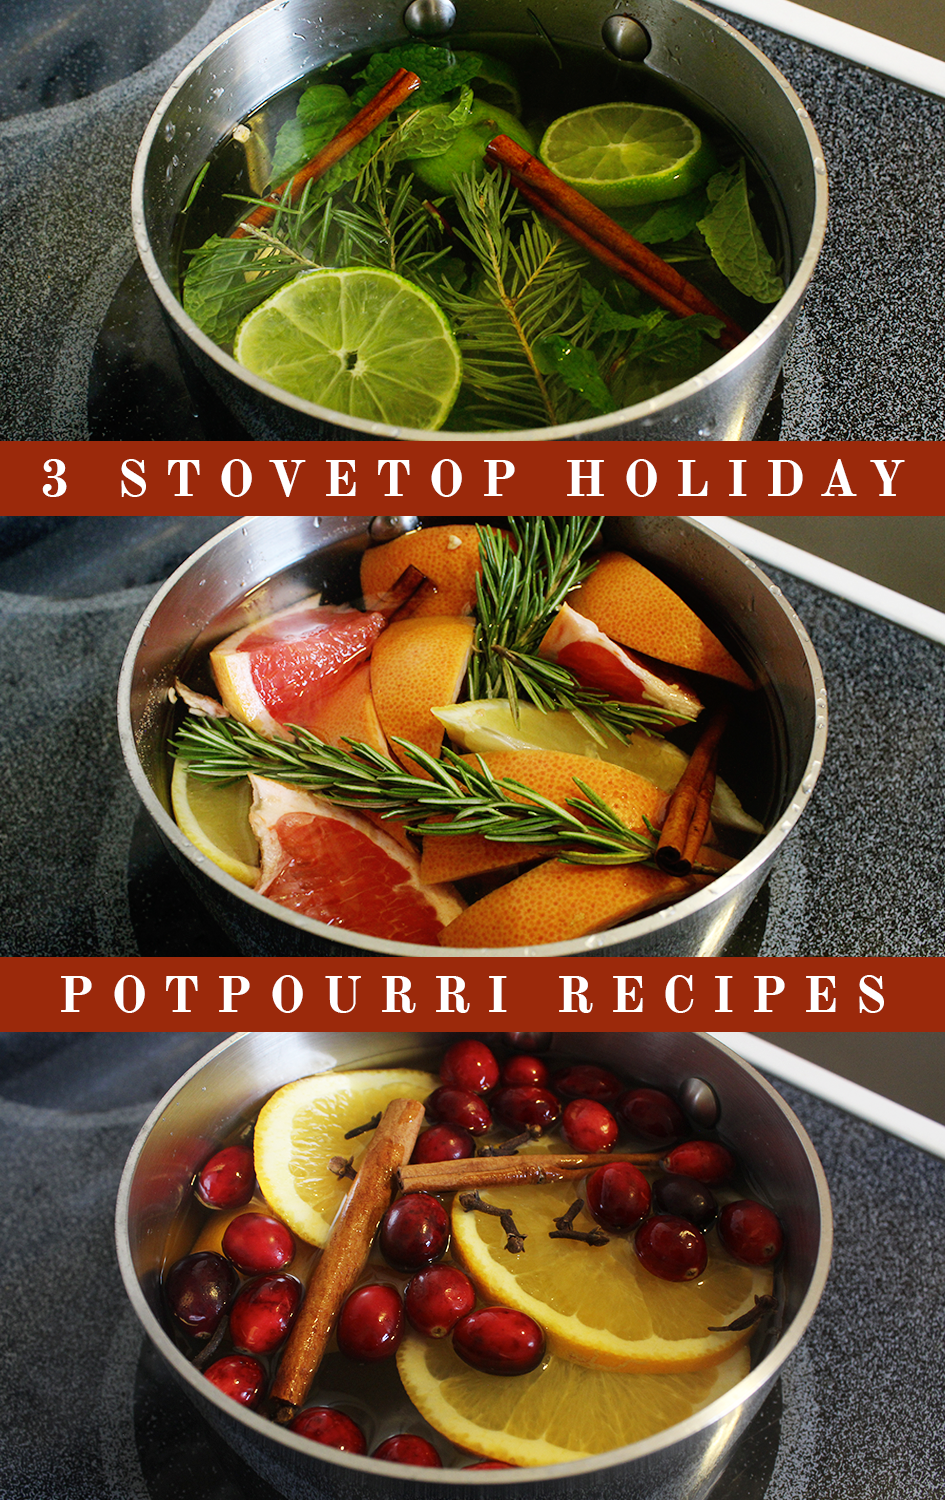 3 Stovetop Holiday Potpourri Recipes Making Your Home Smell Like The Holidays